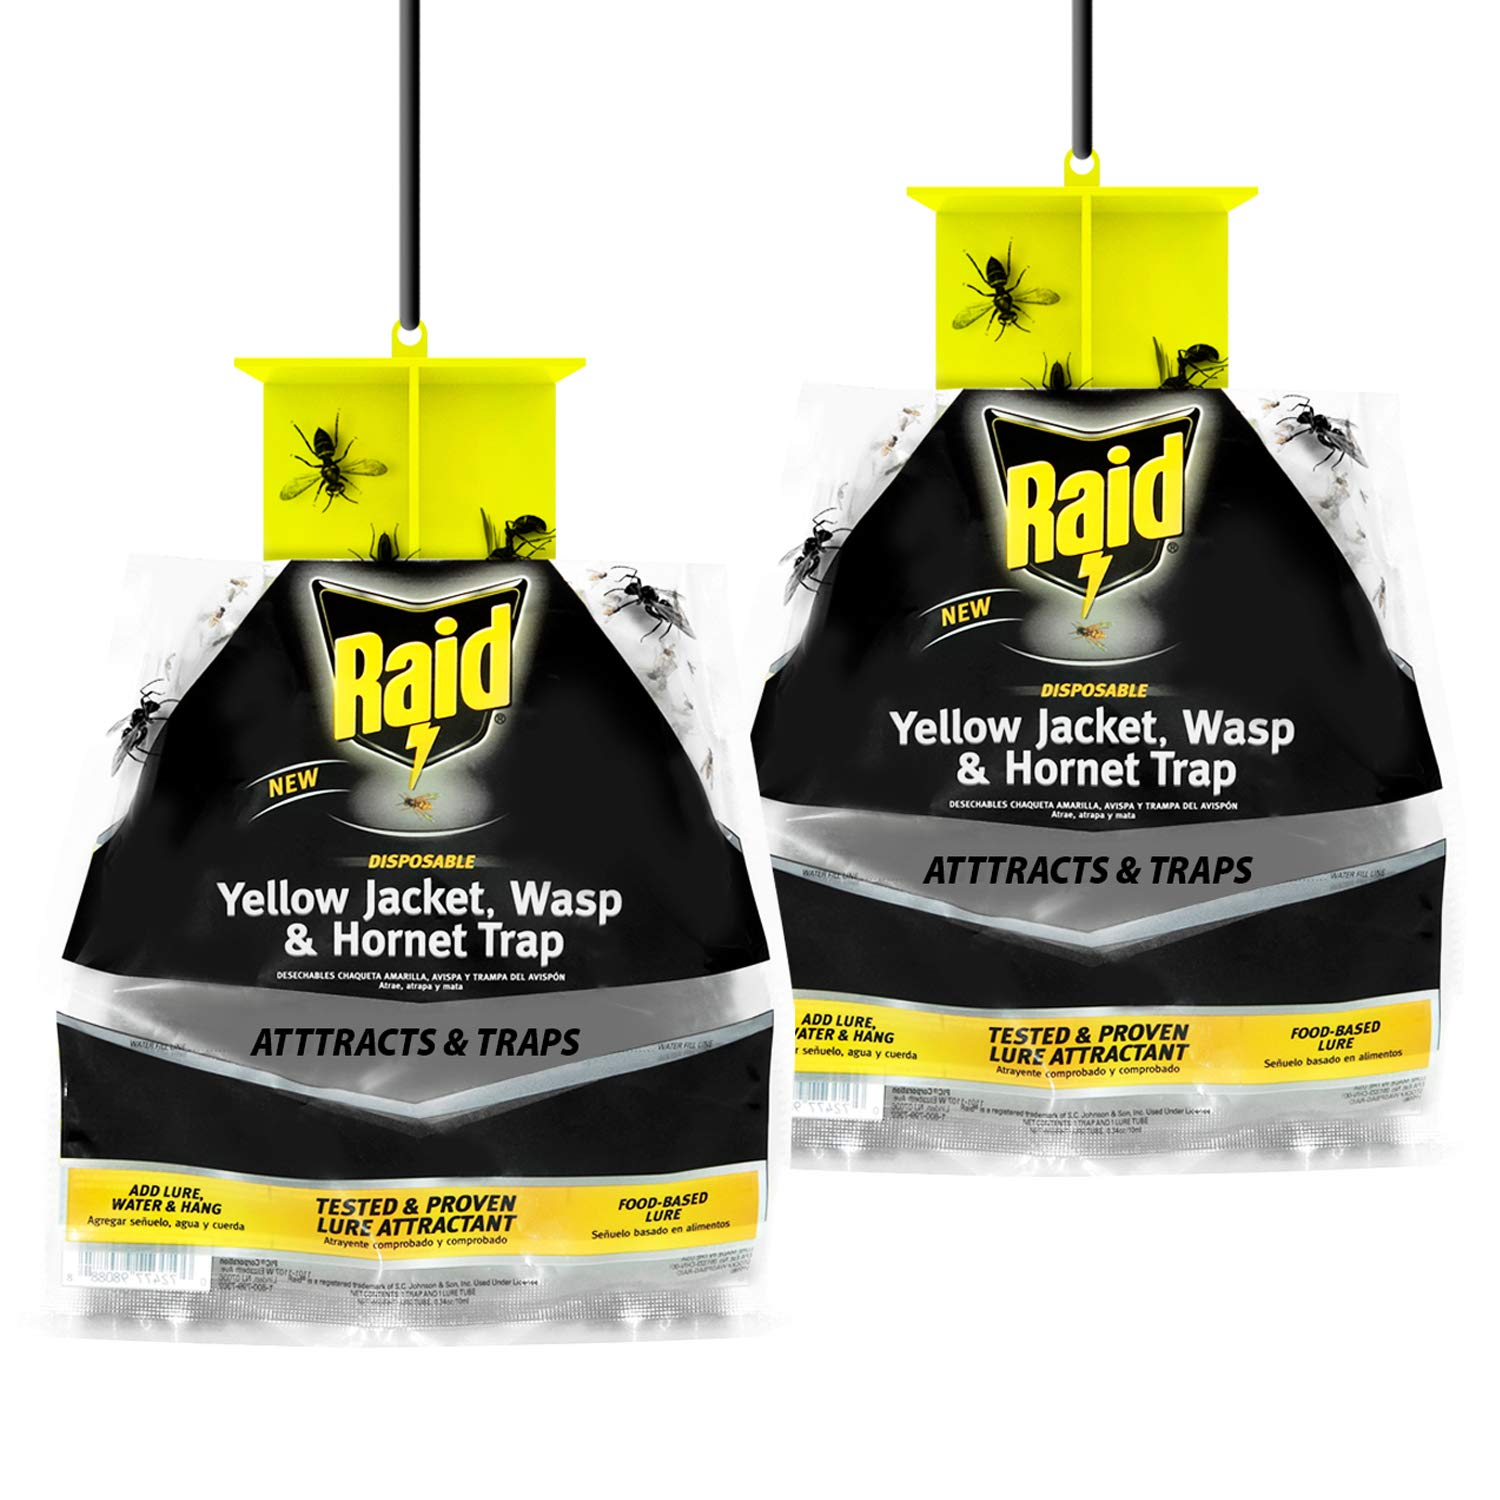 Raid Wasp Trap, Yellow Jacket Trap & Hornet Traps for Outdoors (2-Pack), Hanging Insect Trap, Disposable Wasp, Hornet & Yellow Jacket Traps w/Food-Based Attractants, Effective Yellowjacket Wasp Trap by Raid